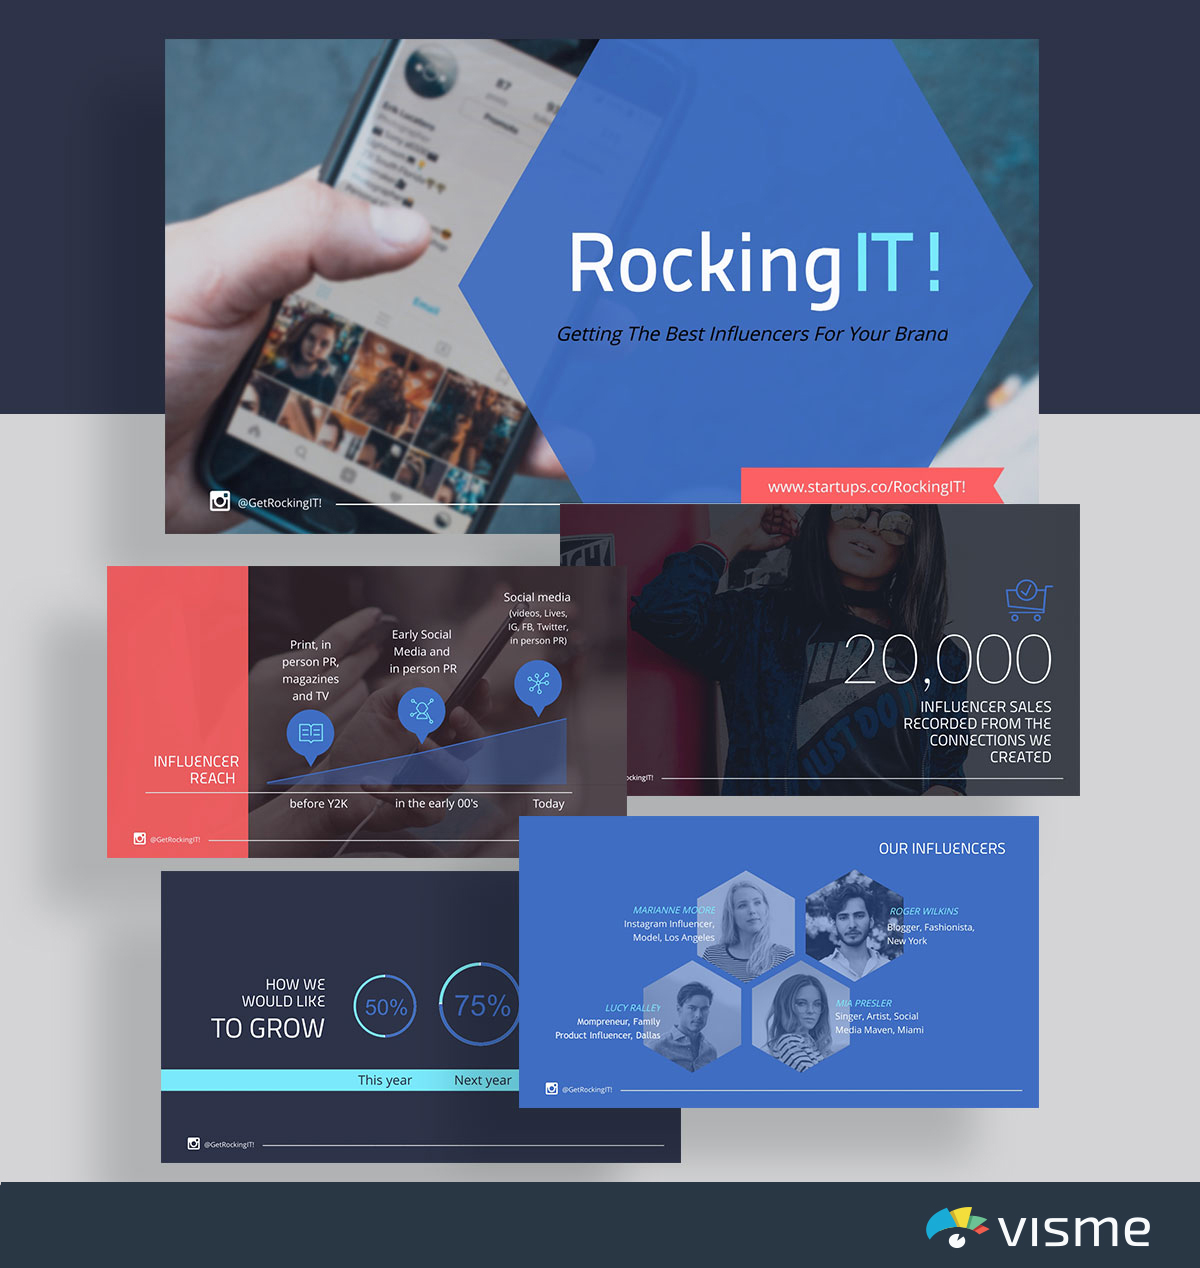 presentation slides - rockingit launchrock pitch deck template visme